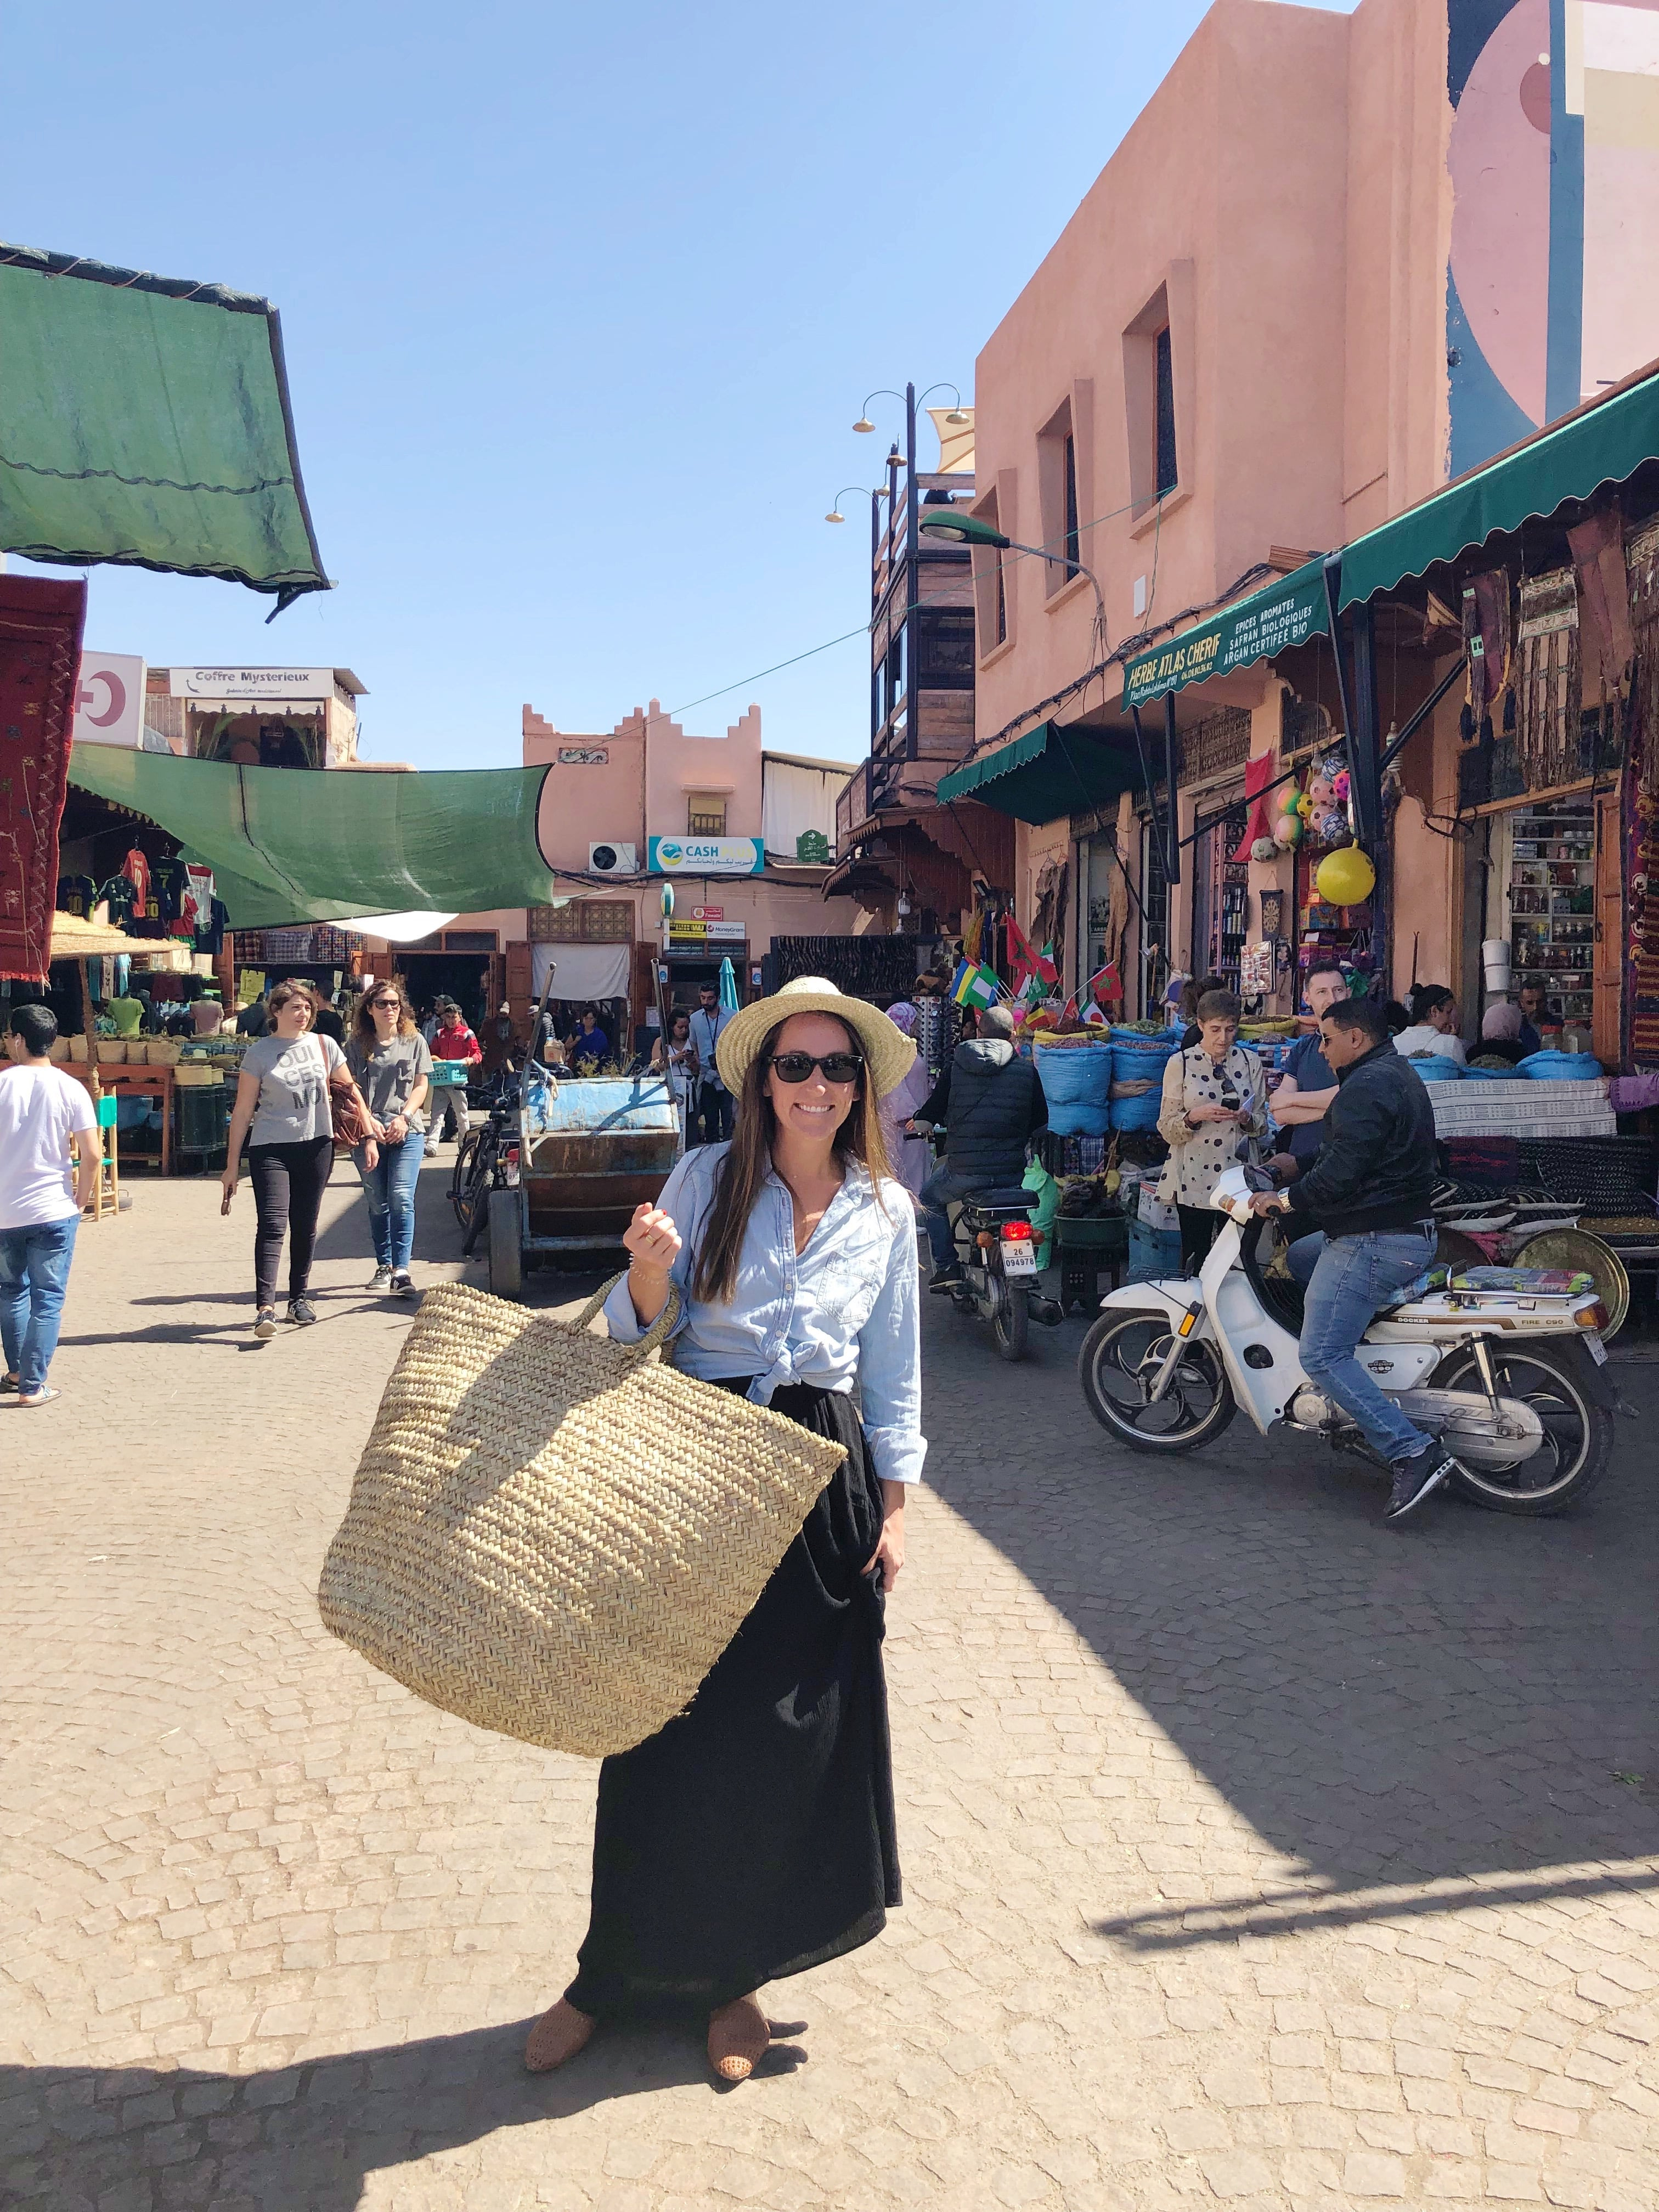 SHOPPING IN MOROCCO - A quick guide for what to buy and how to get the best deal in Morocco! | Shopping in Morocco - Morocco shopping guide - Morocco Shopping Guide - Cools Things To Buy In Morocco - Morocco Market Prices - Morocco Souks - Shopping in Marrakech - Shopping In Fes - Shopping Prices In Morocco - Rug Shopping Morocco - Leather Shopping Morocco - Prices In Morocco - #morocco #travelblog #marrakech #fes #travel